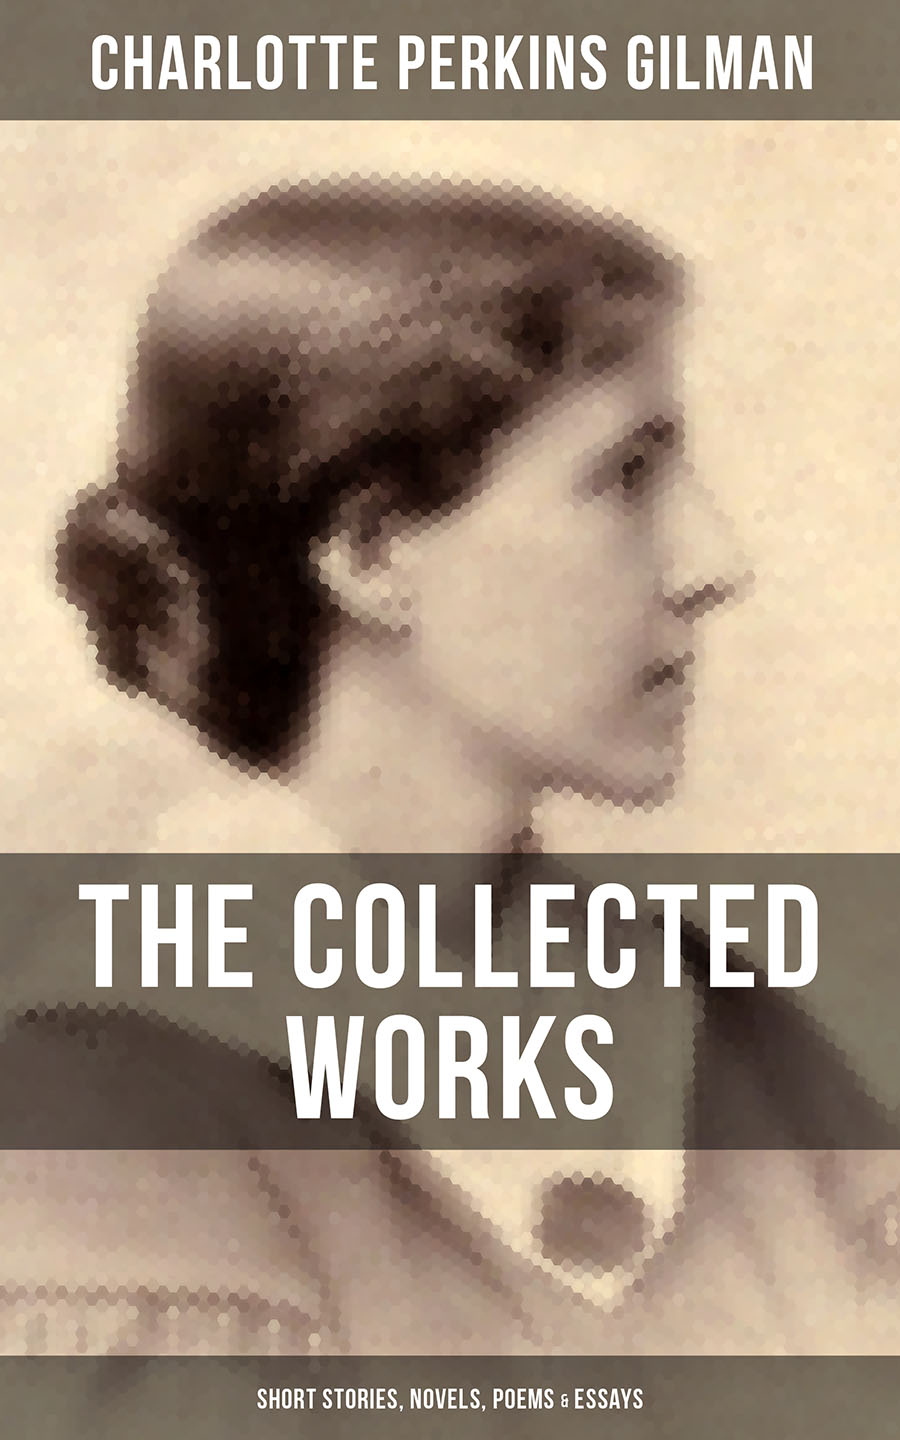 Charlotte Perkins Gilman THE COLLECTED WORKS OF CHARLOTTE PERKINS GILMAN: Short Stories, Novels, Poems & Essays шорты dorothy perkins curve dorothy perkins curve do029ewfage5